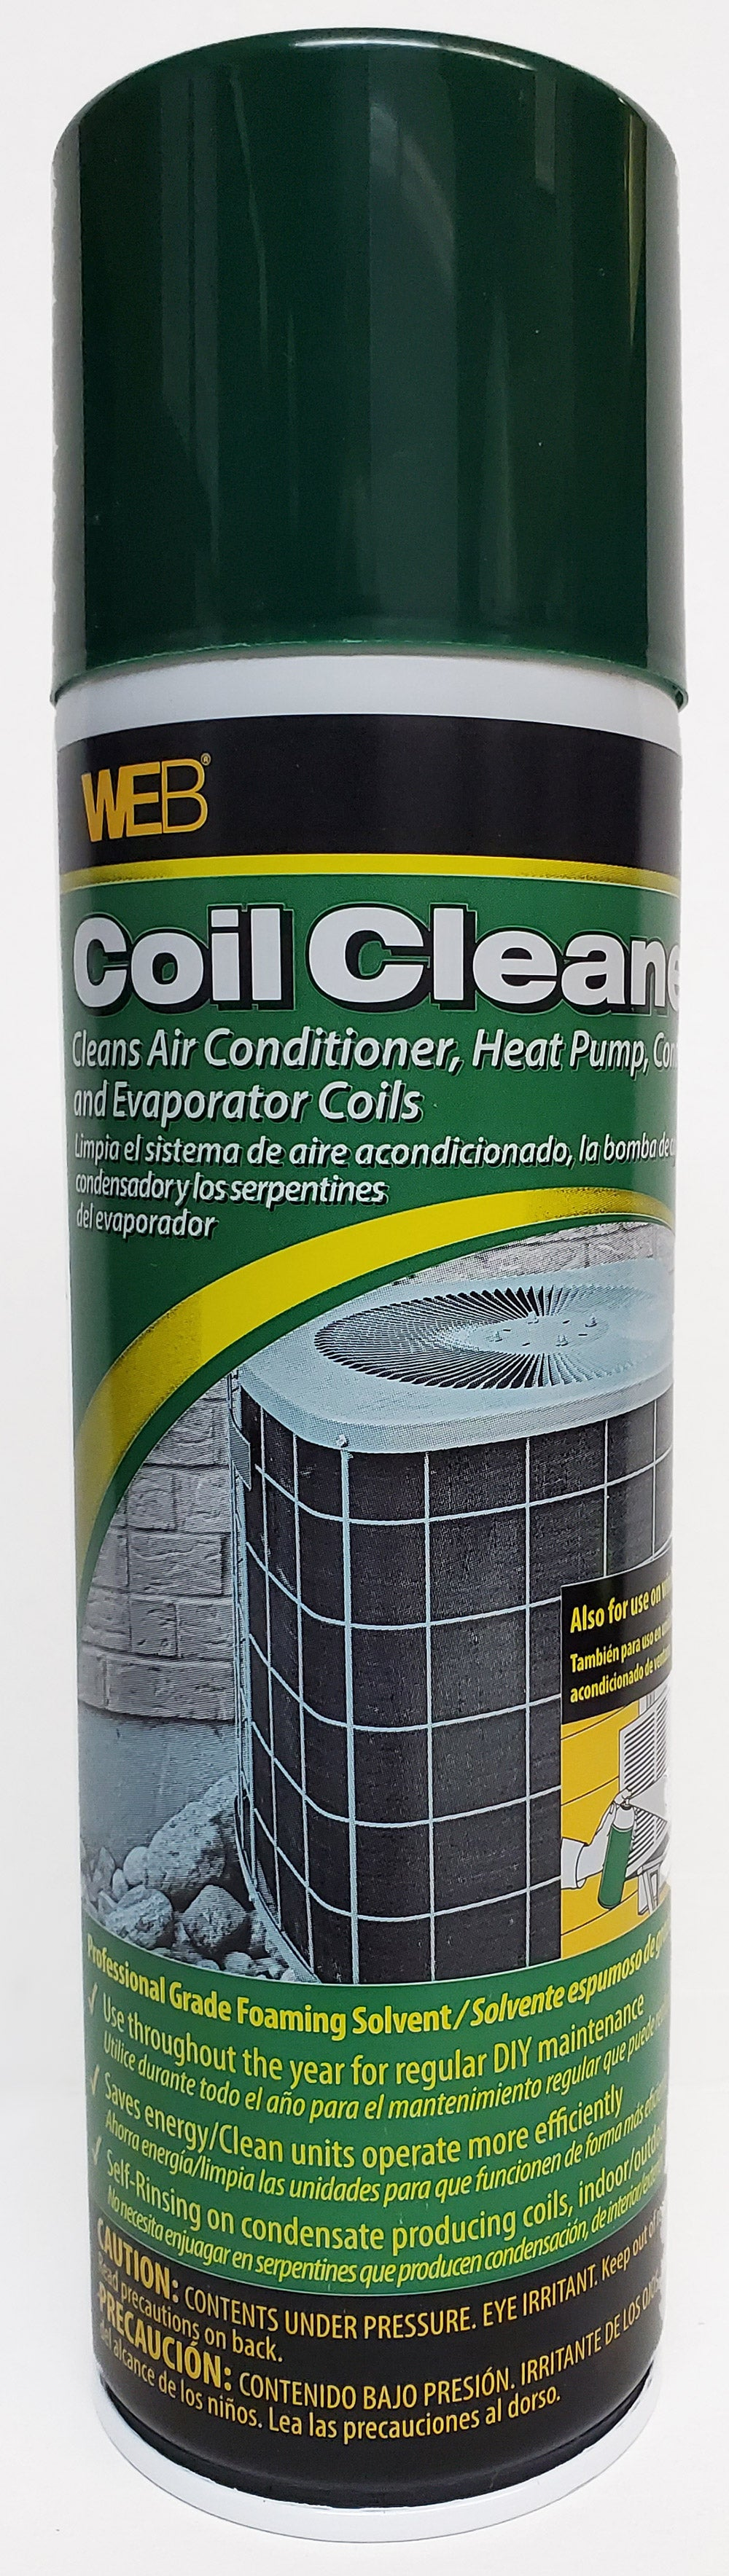 Professional Strength AC Heat Pump Coil Cleaner 19 oz. Pack of 1